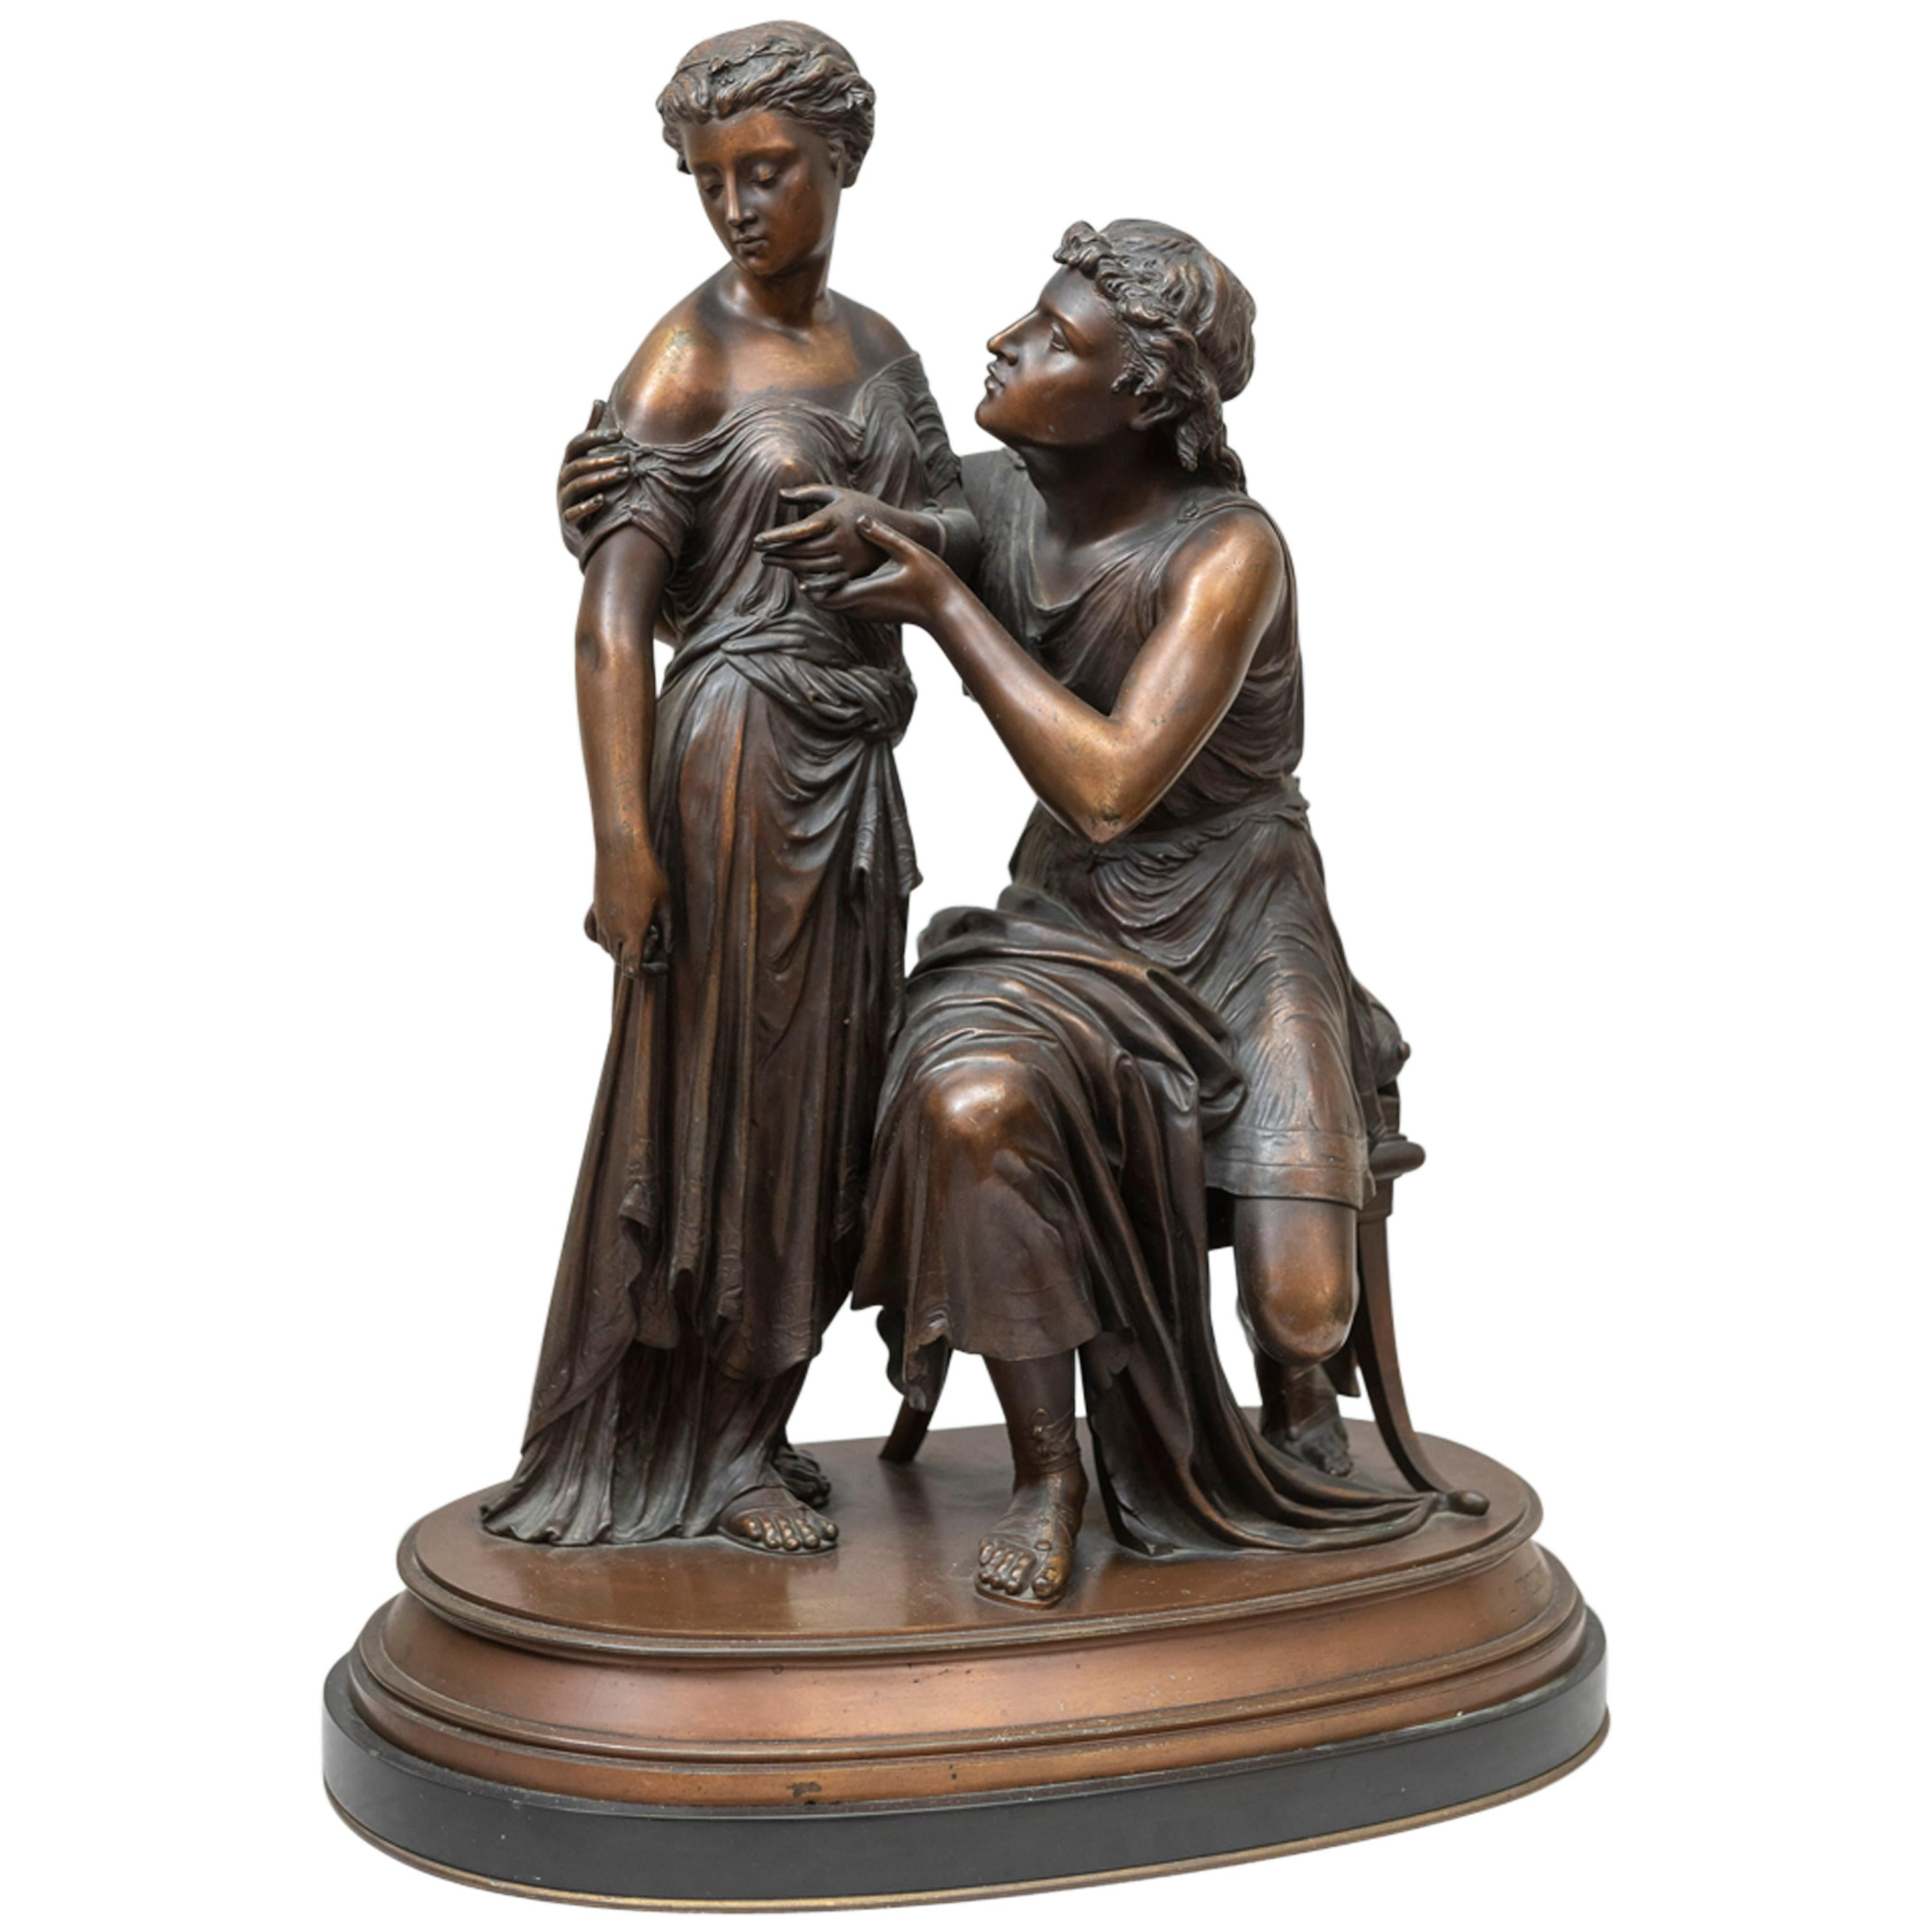 Bronze Statue of a Pleading Man, and a Shy Maiden, French, Gregoire, 1870s